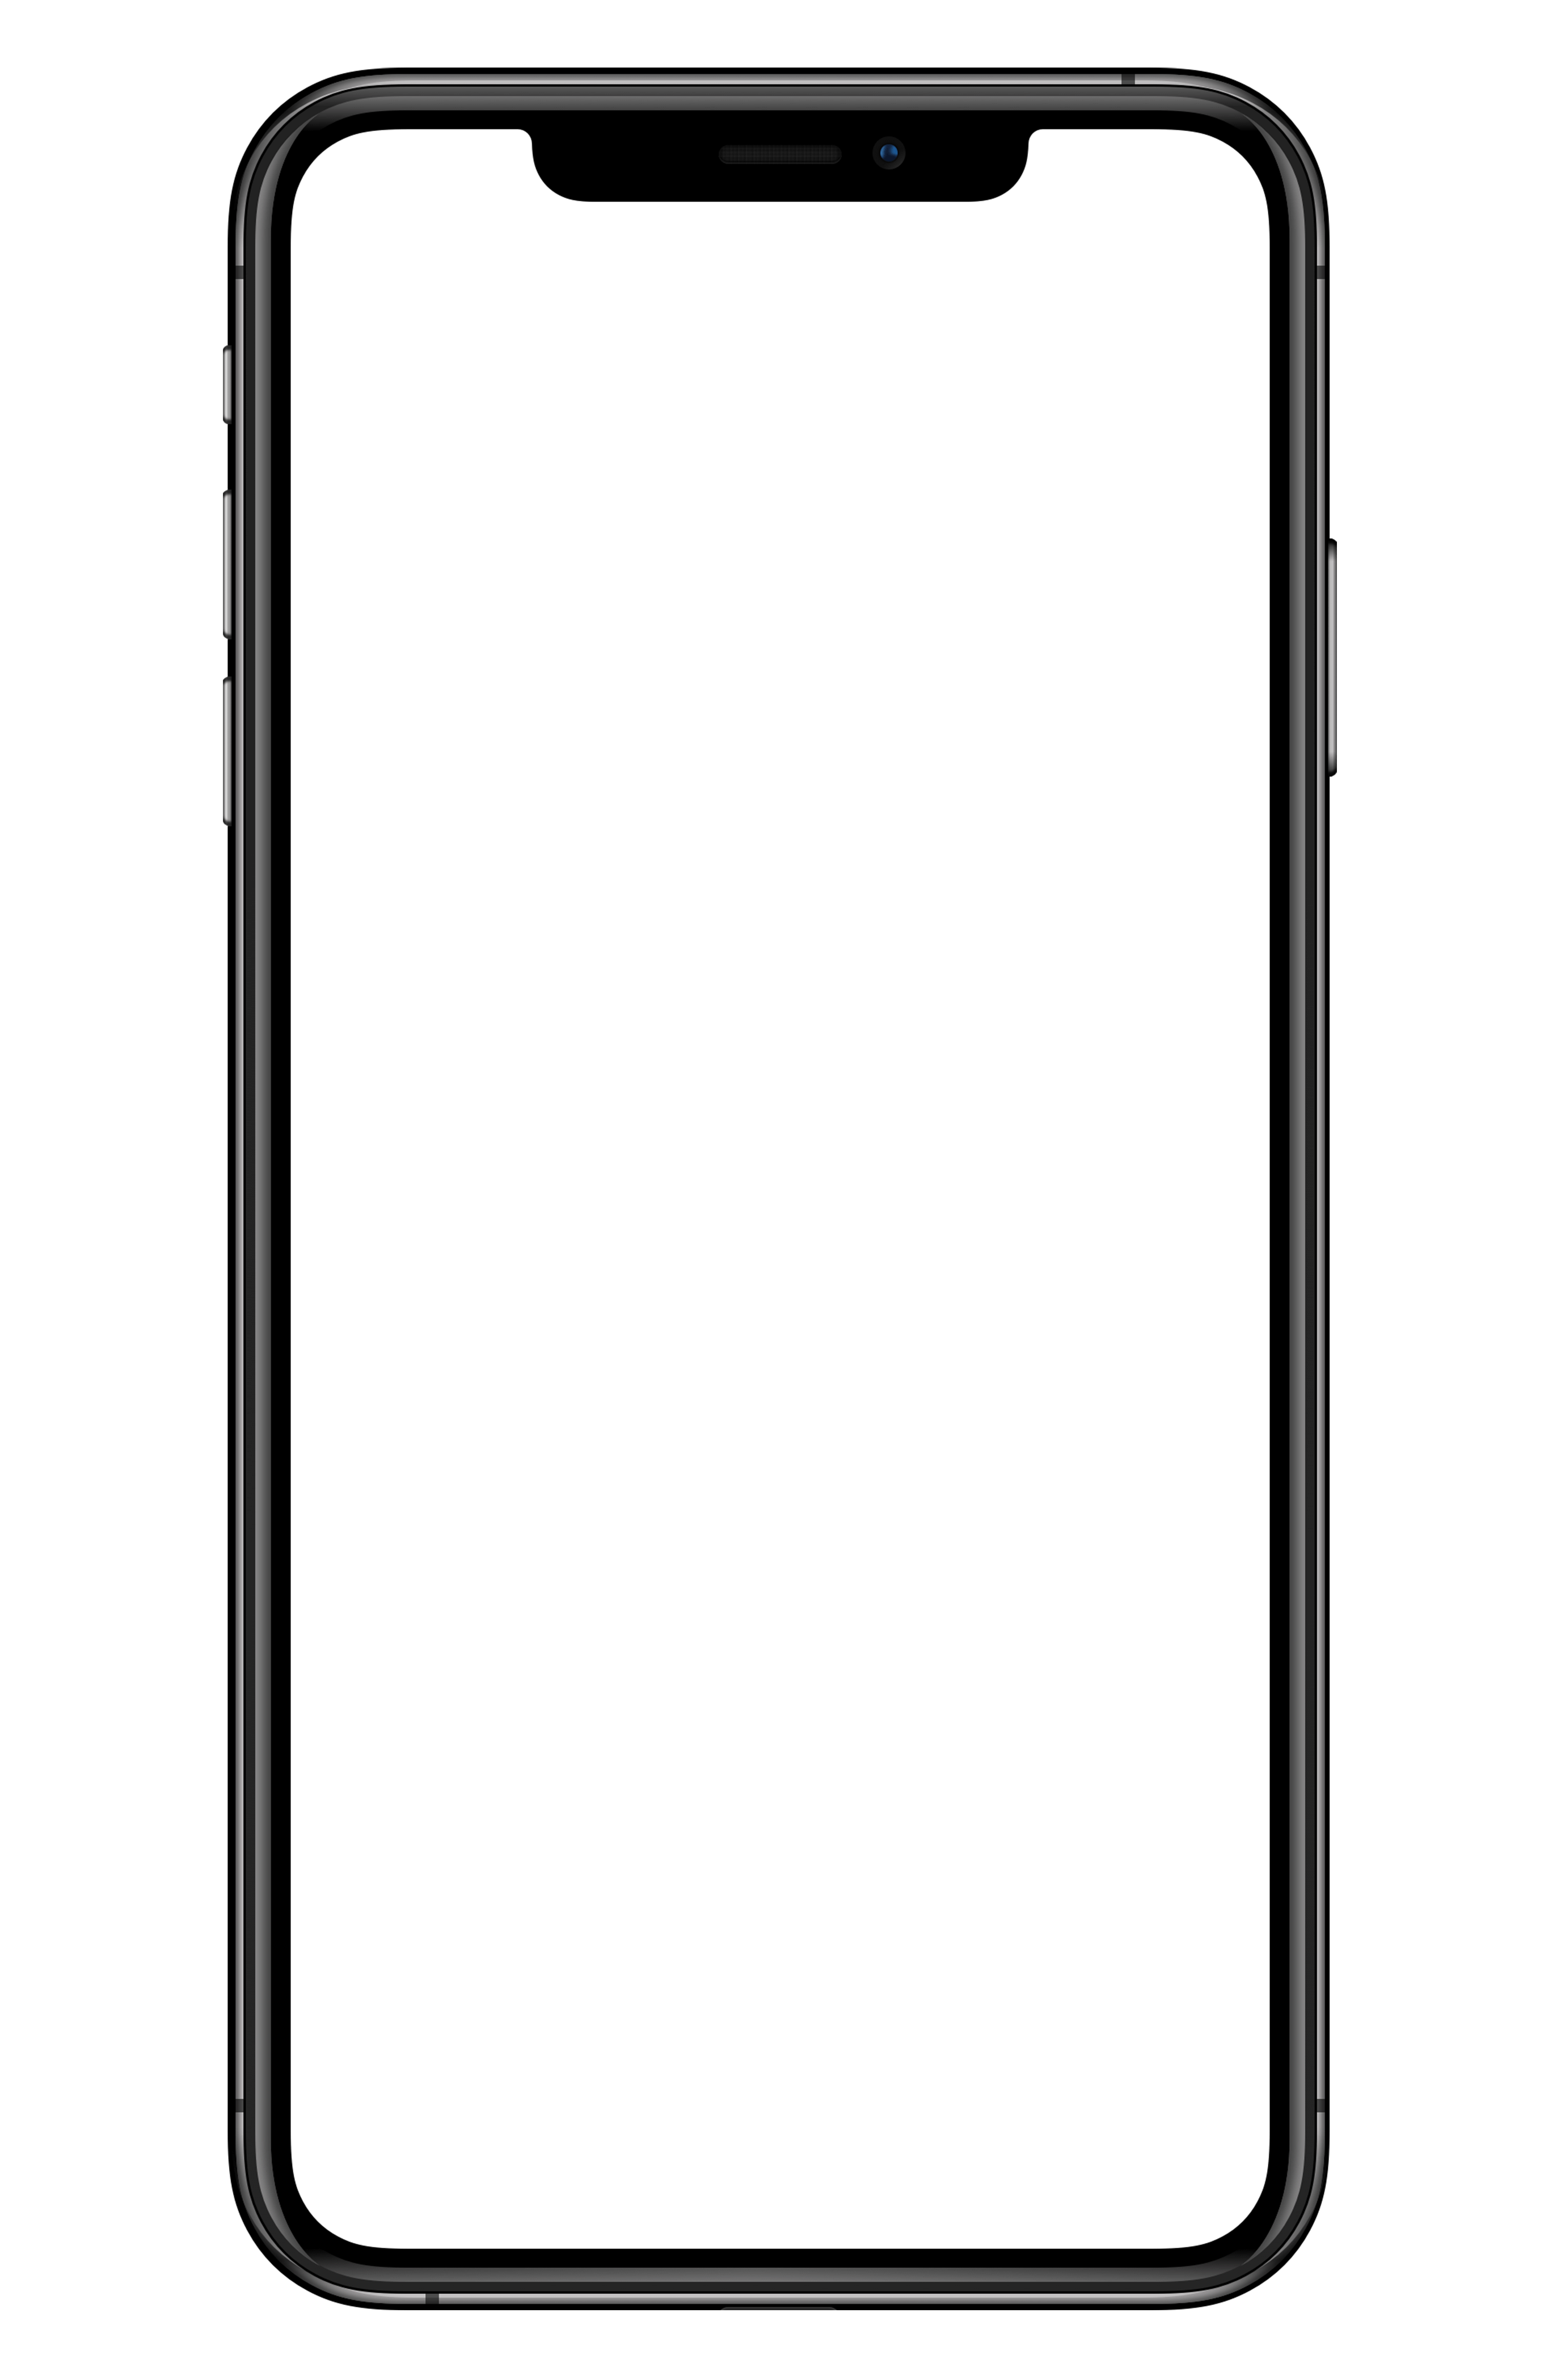 Ihpone 7 sketch png transparent artwork clipart banner transparent library Apple iPhone XS Max iPhone 5s Smartphone - xs mockup png download ... banner transparent library